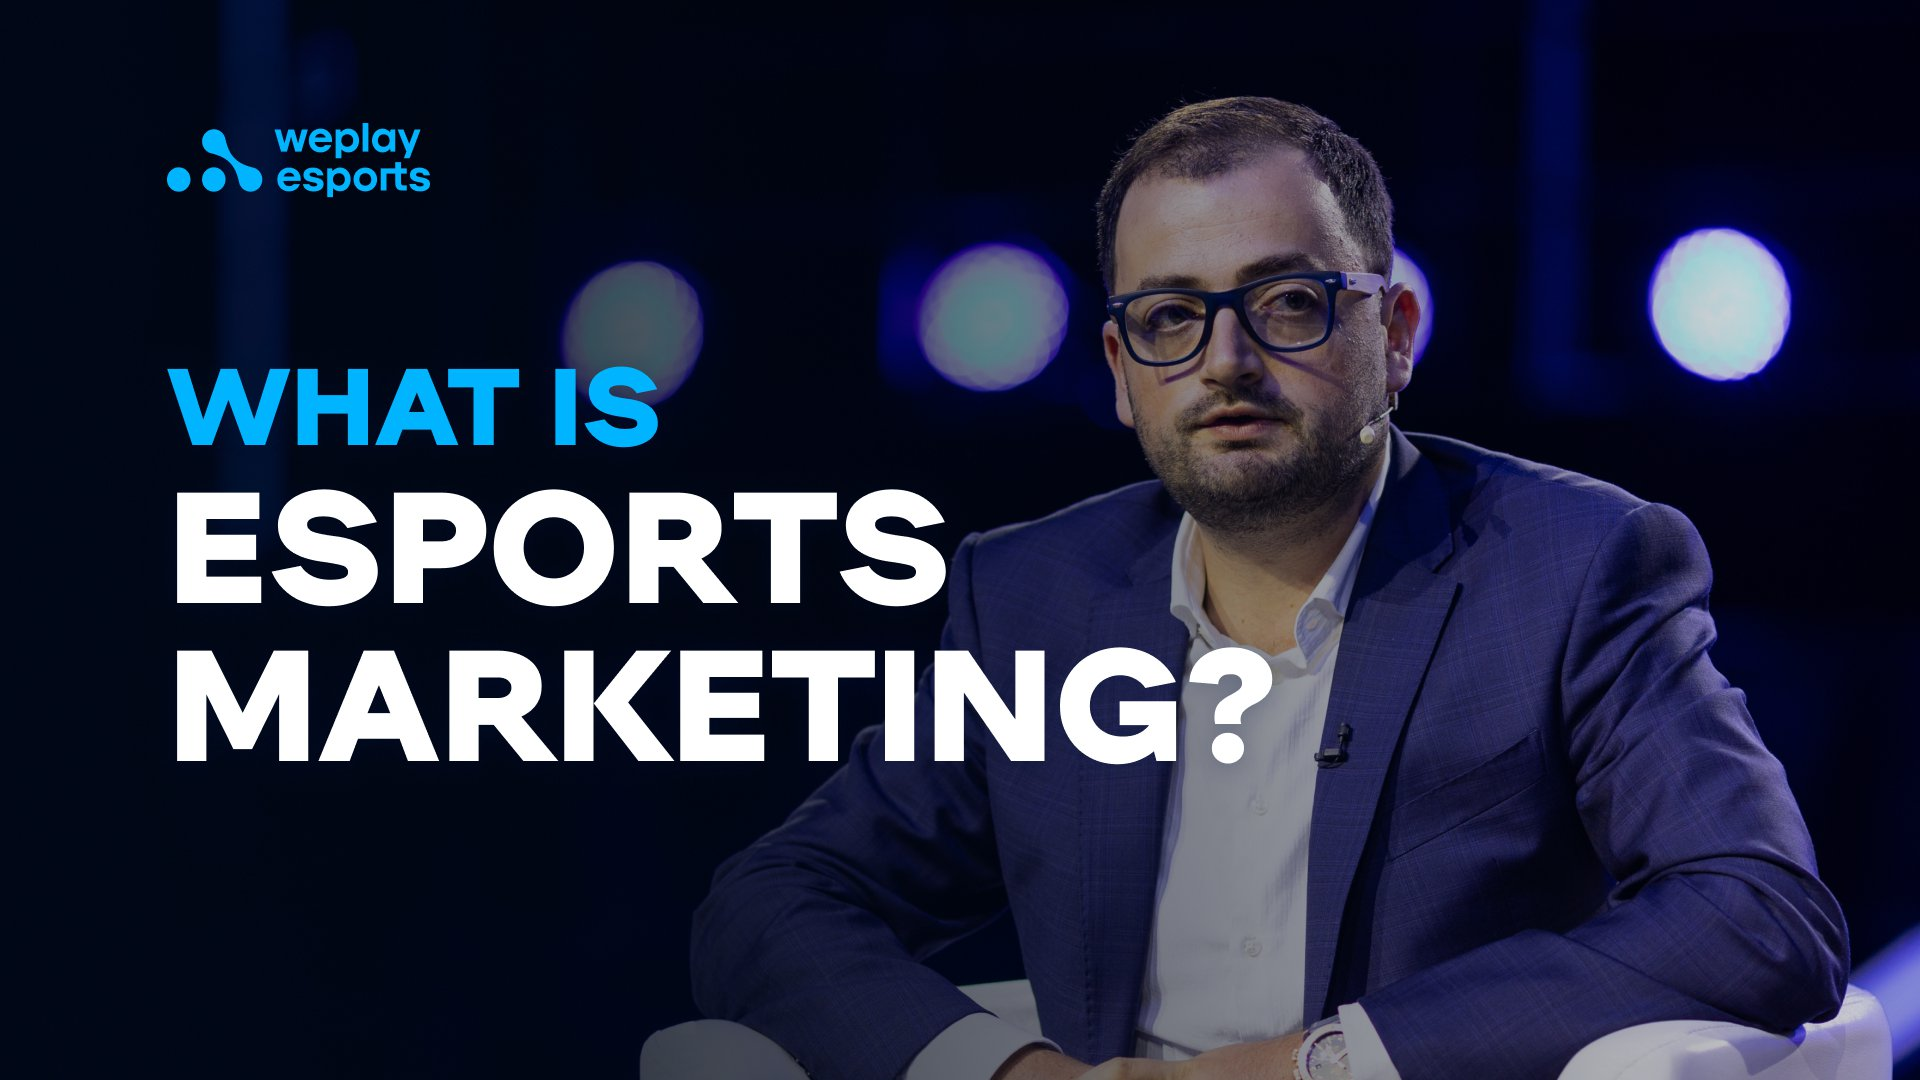 What Is Esports Marketing?